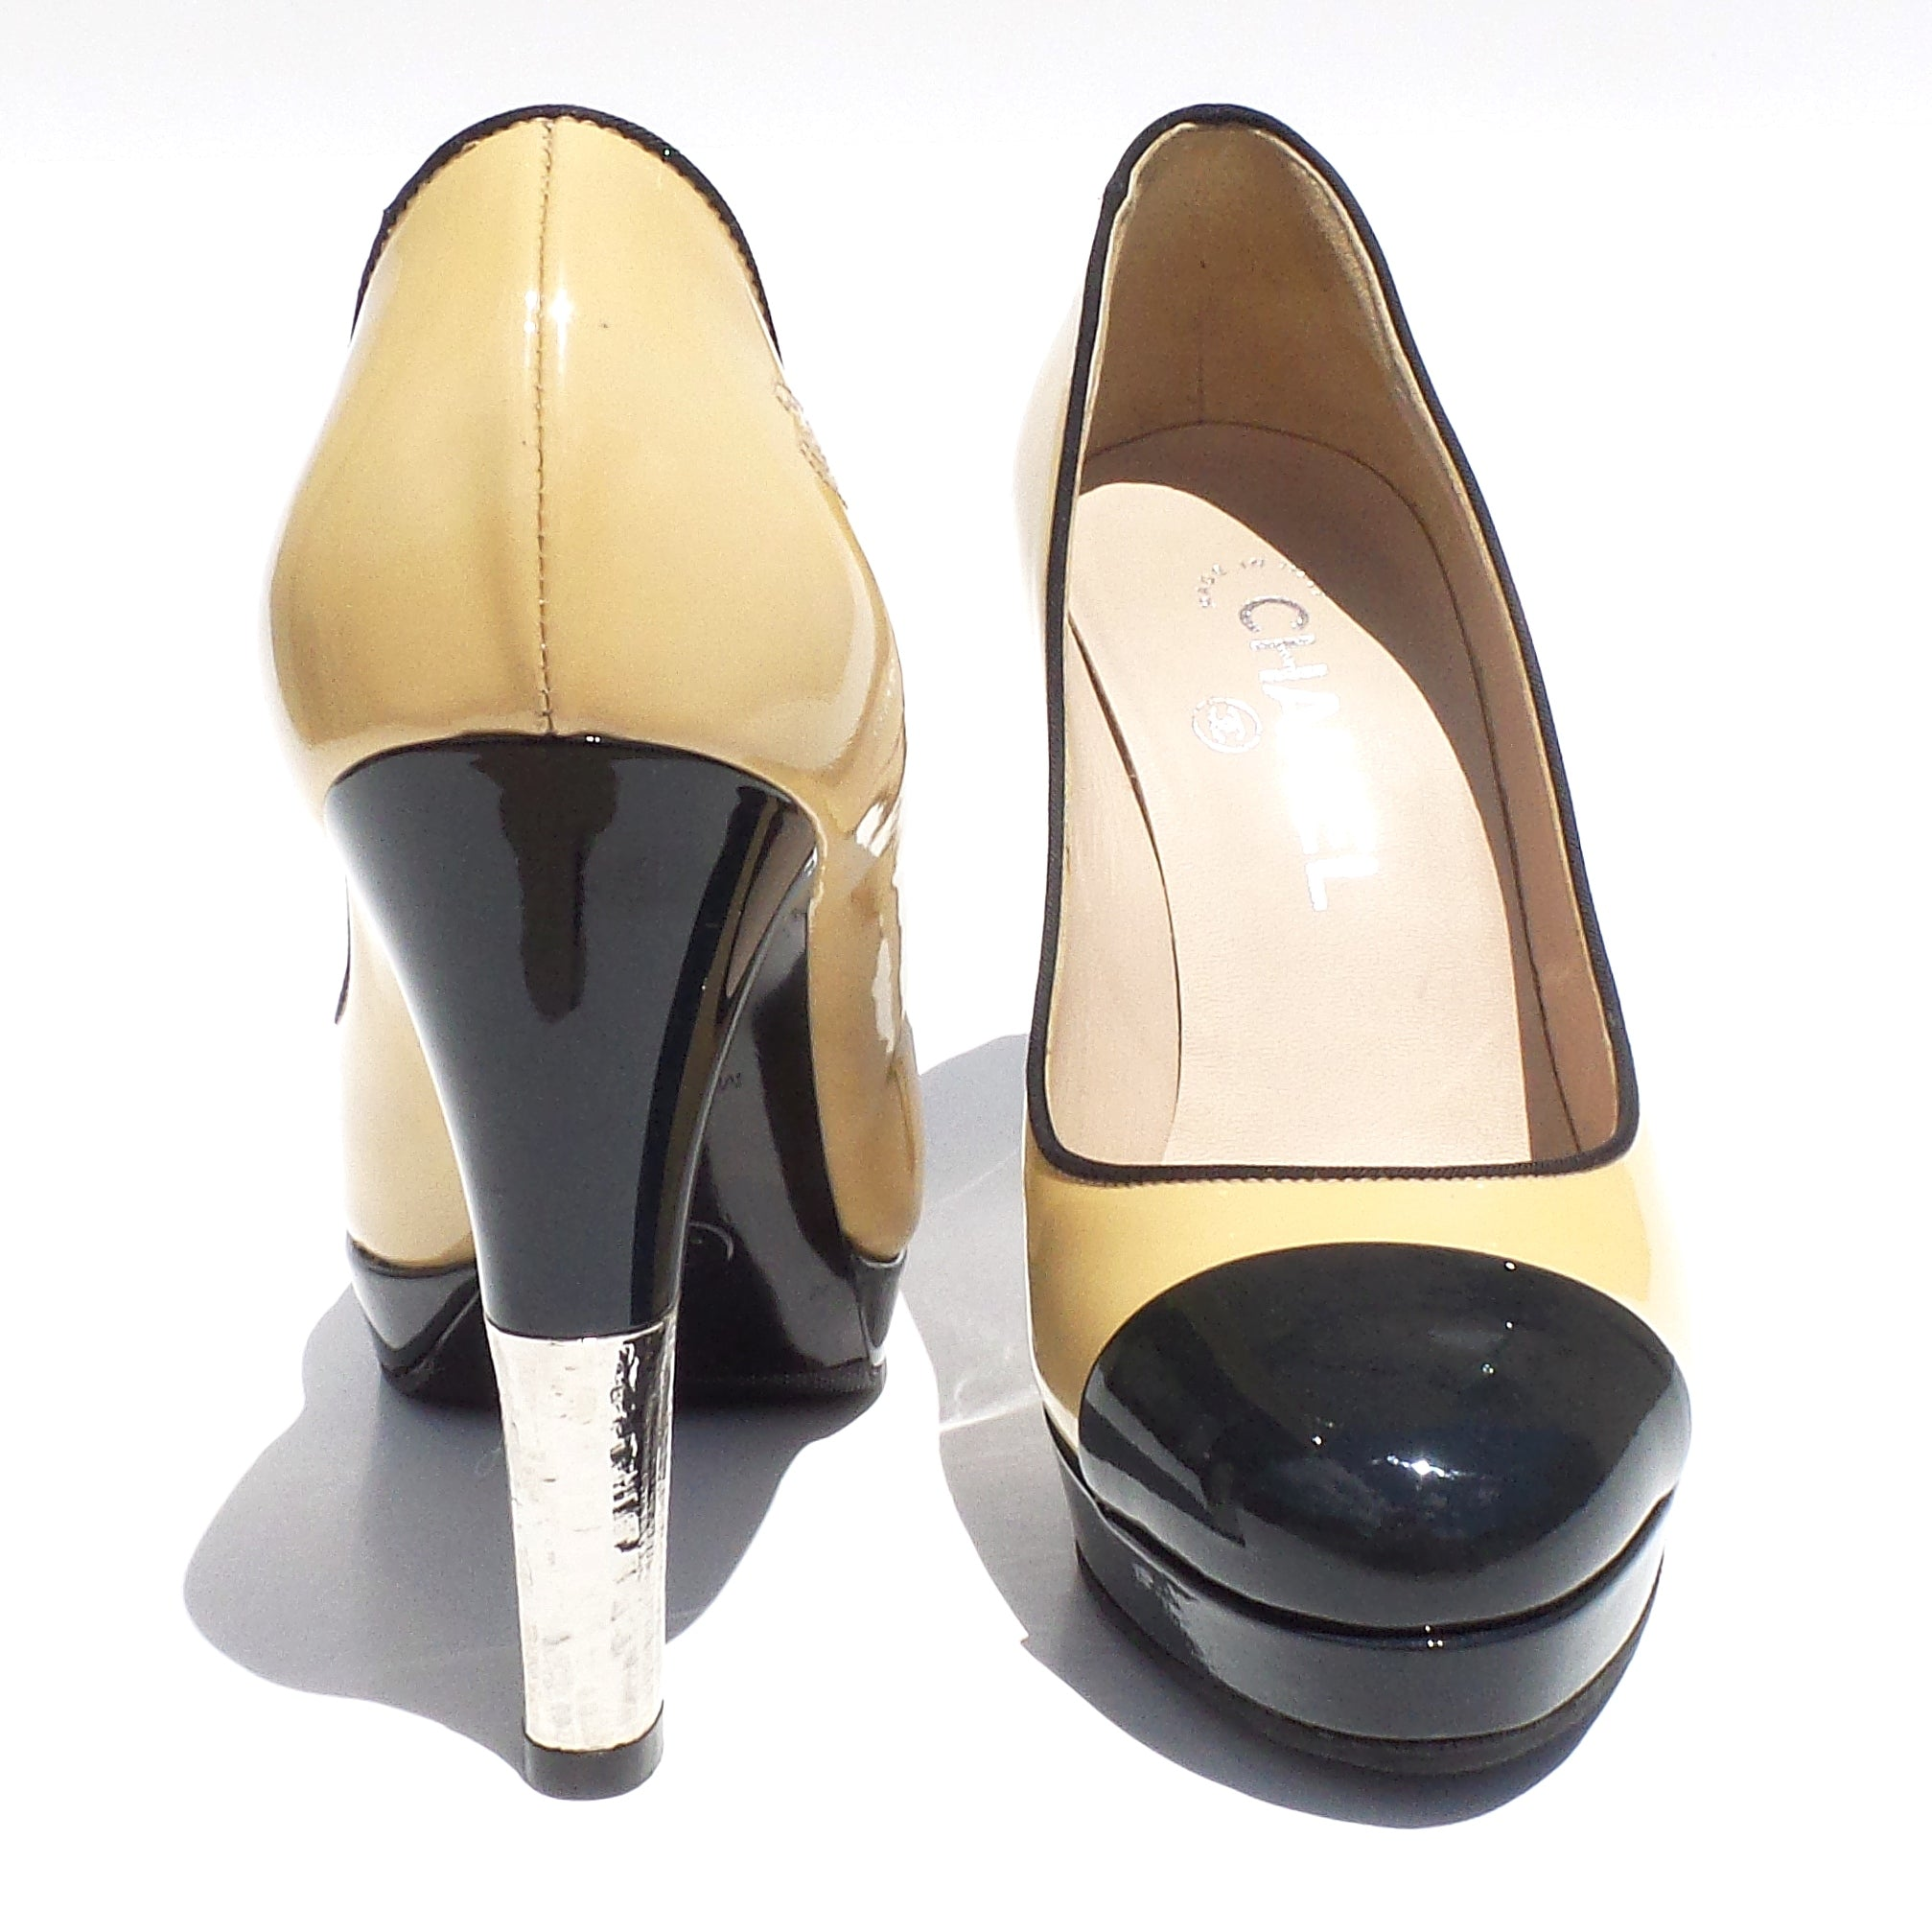 057258c76e1 CHANEL Beige Black Navy Patent Leather Cap Toe Platform Silver Heels Pumps  36.5